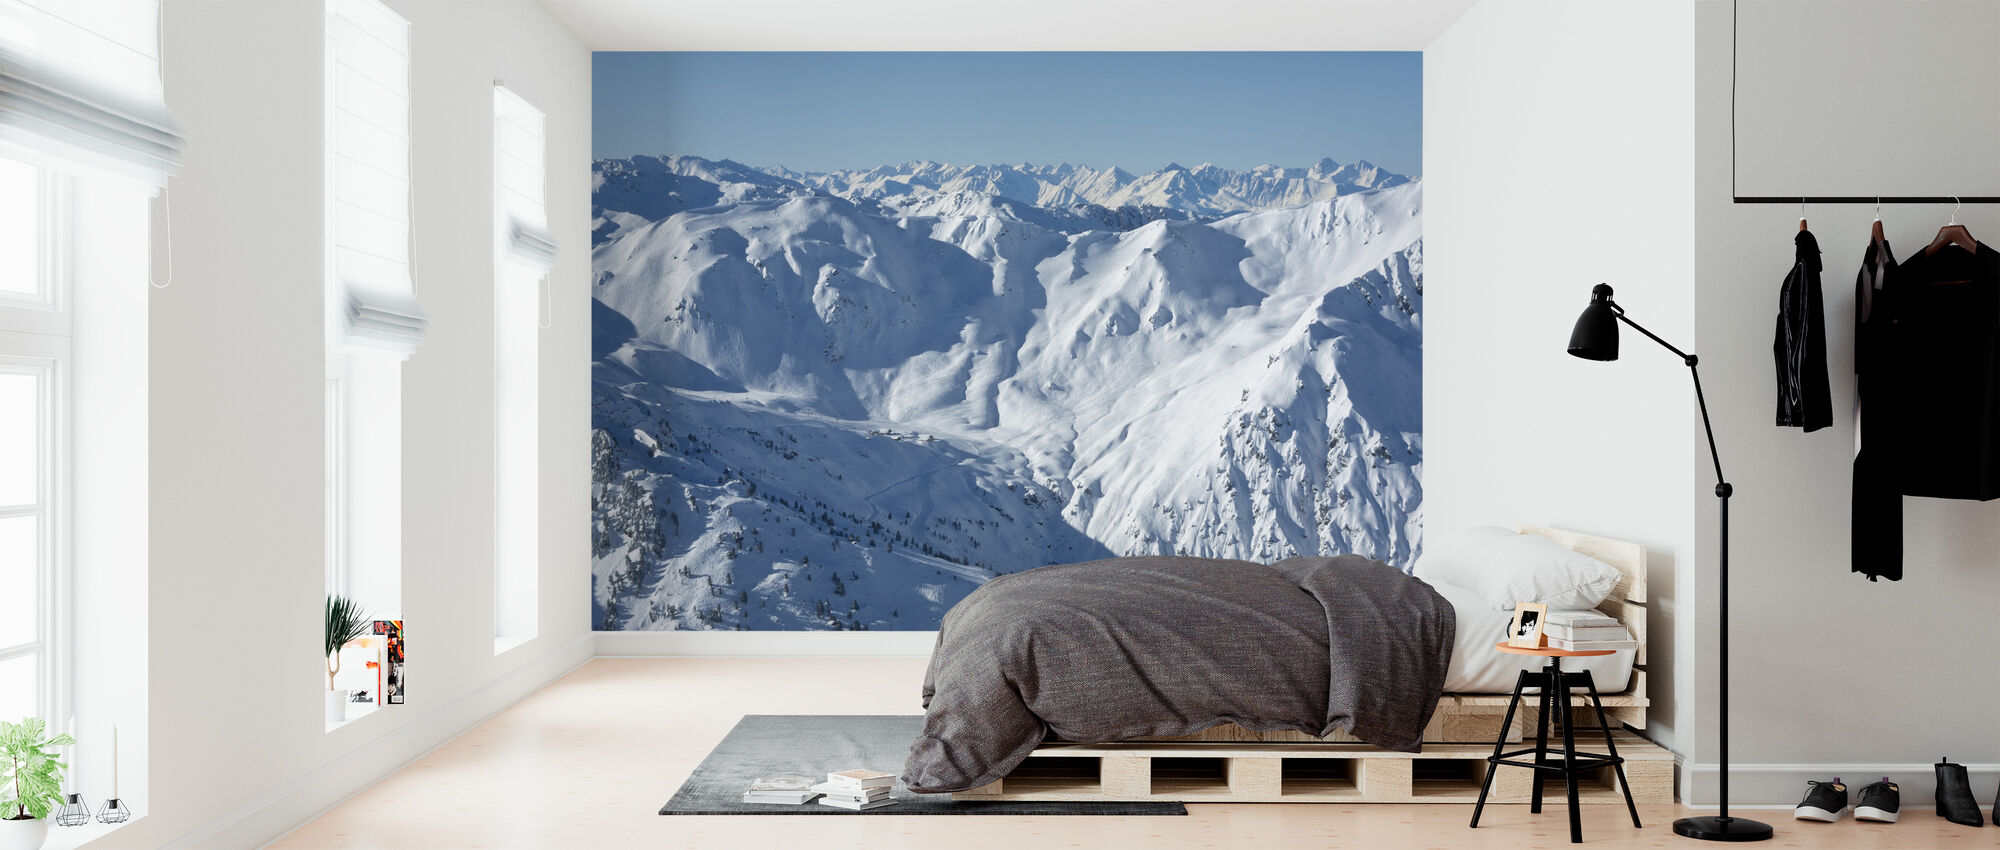 Ski Slopes of Zillertal - Wallpaper - Bedroom